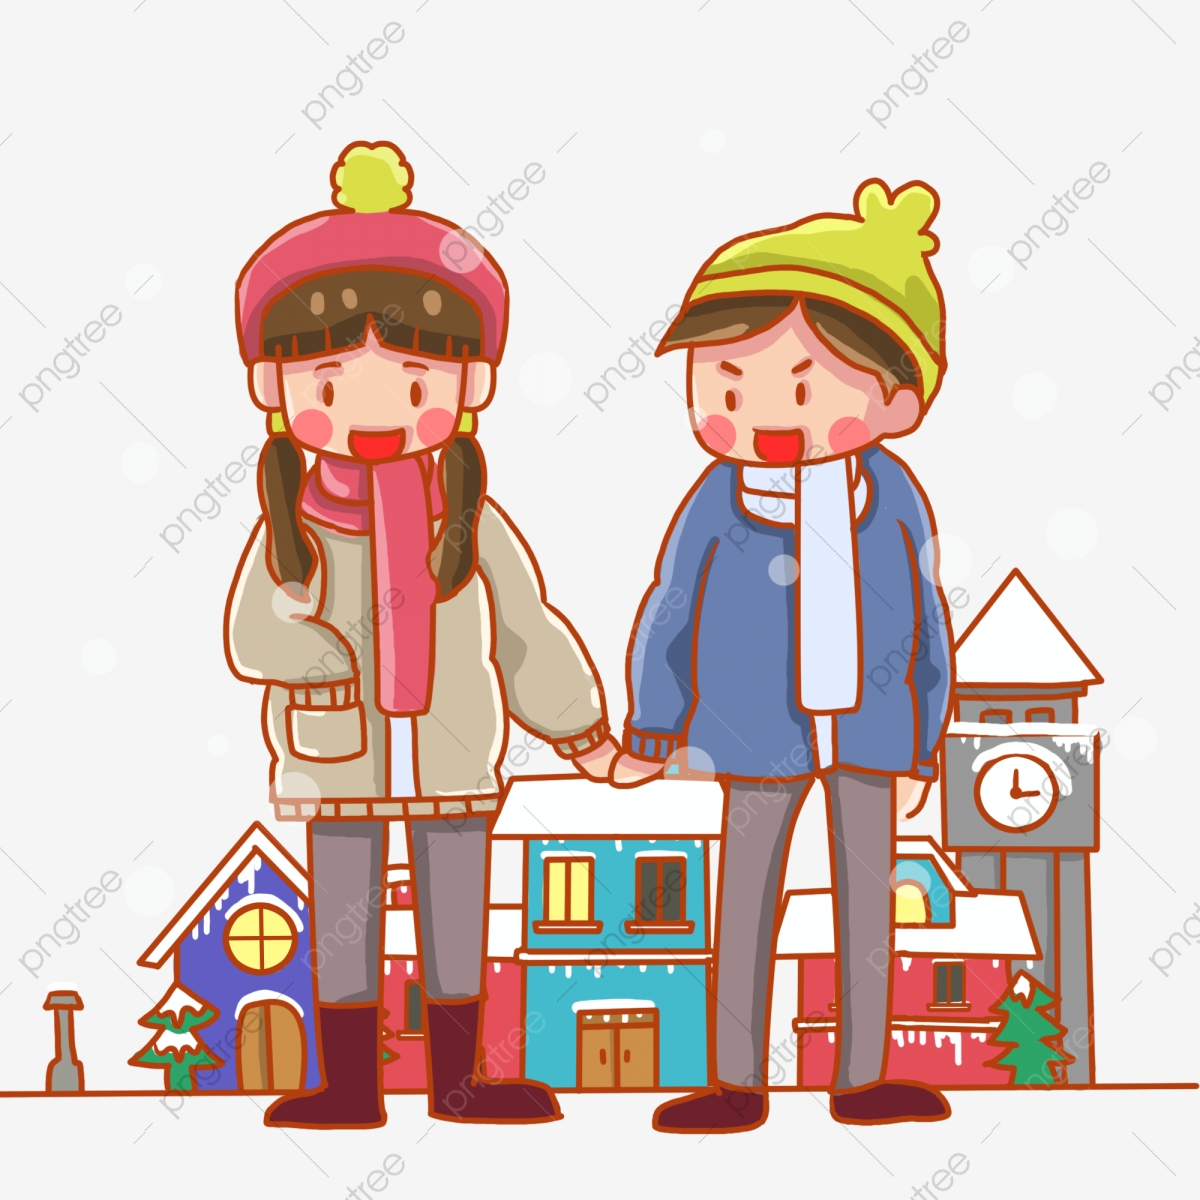 Couple Holding Hands Down Jacket Plush Cap, Love, Happy, Winter PNG ... image freeuse stock